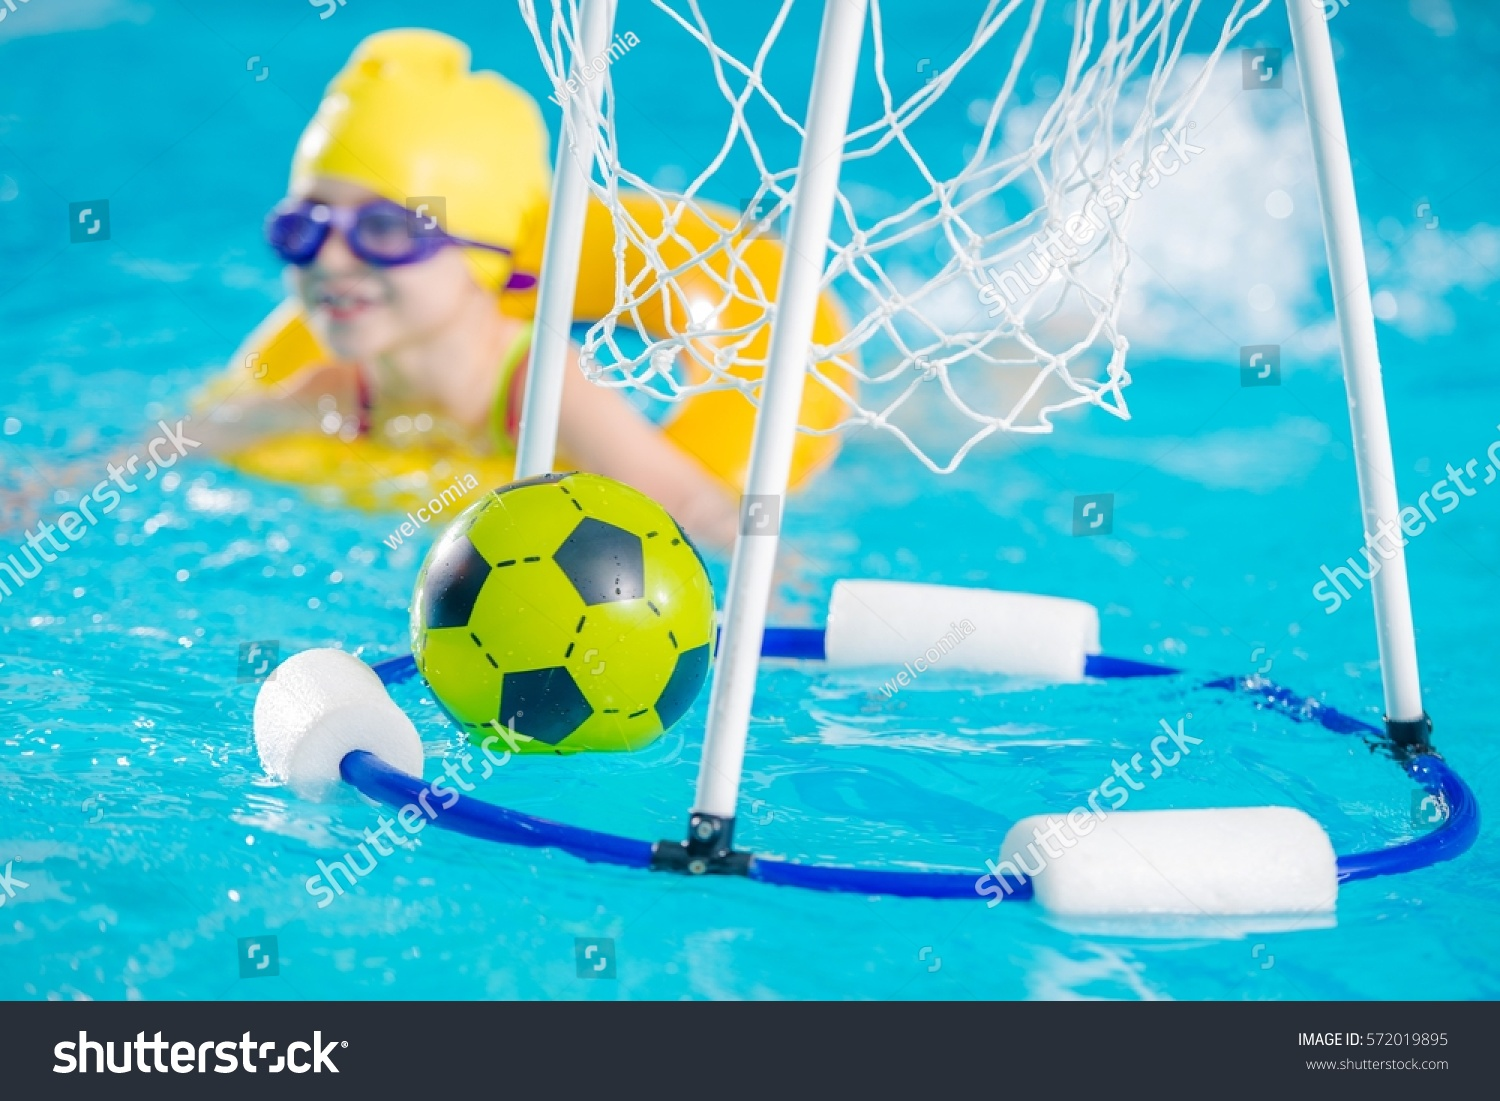 Swimming Pool Games Children Playing Ball Stock Photo (Edit Now ...